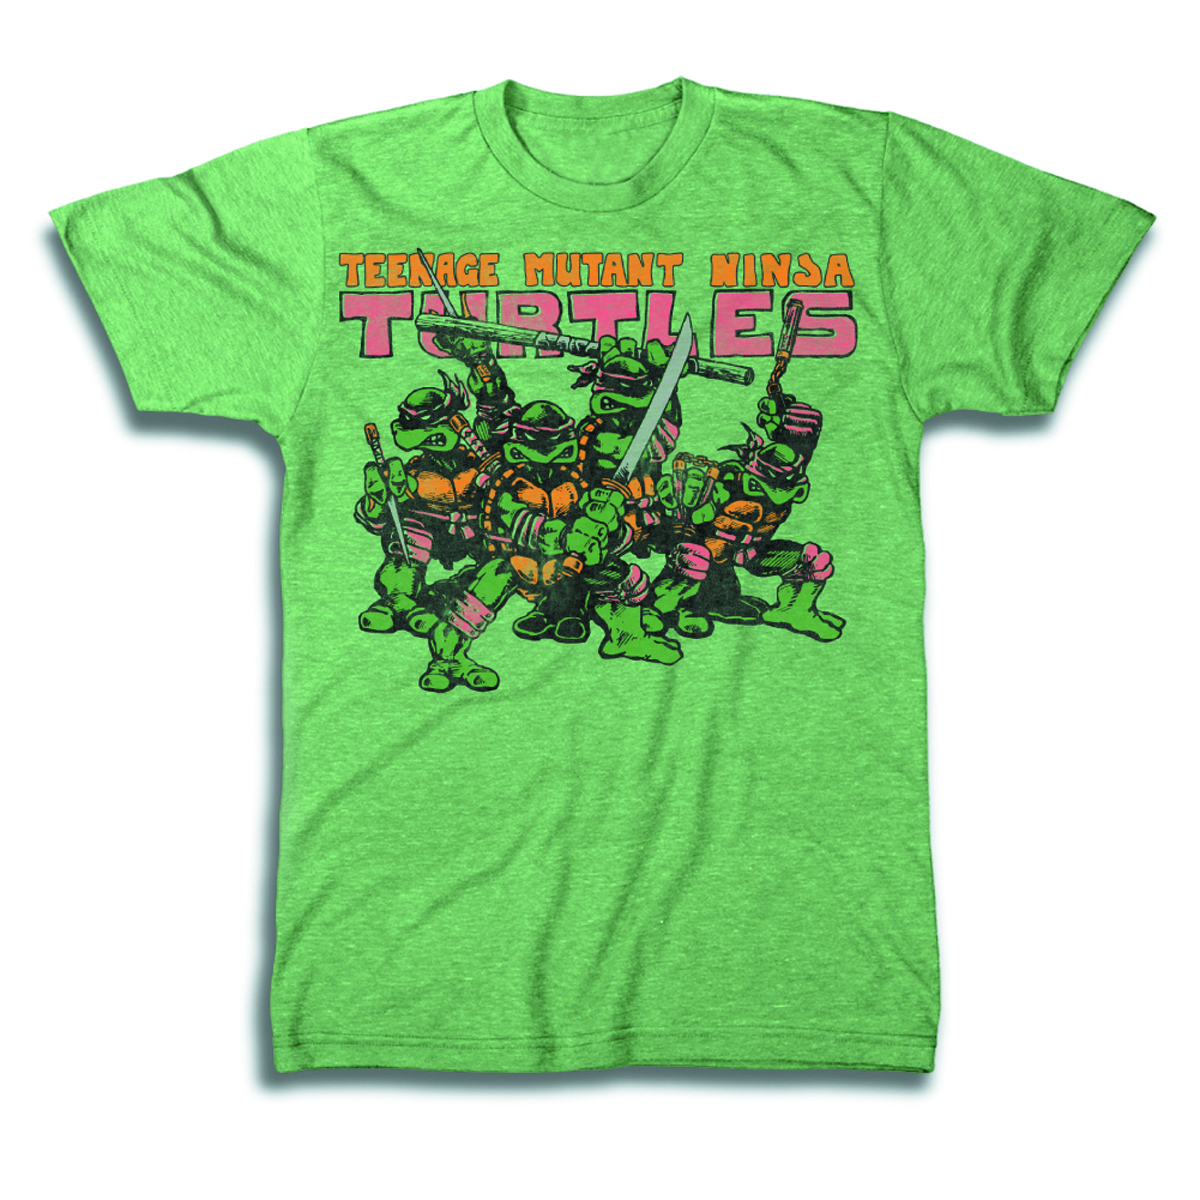 TMNT GROUP LOGO PX GREEN T/S XL